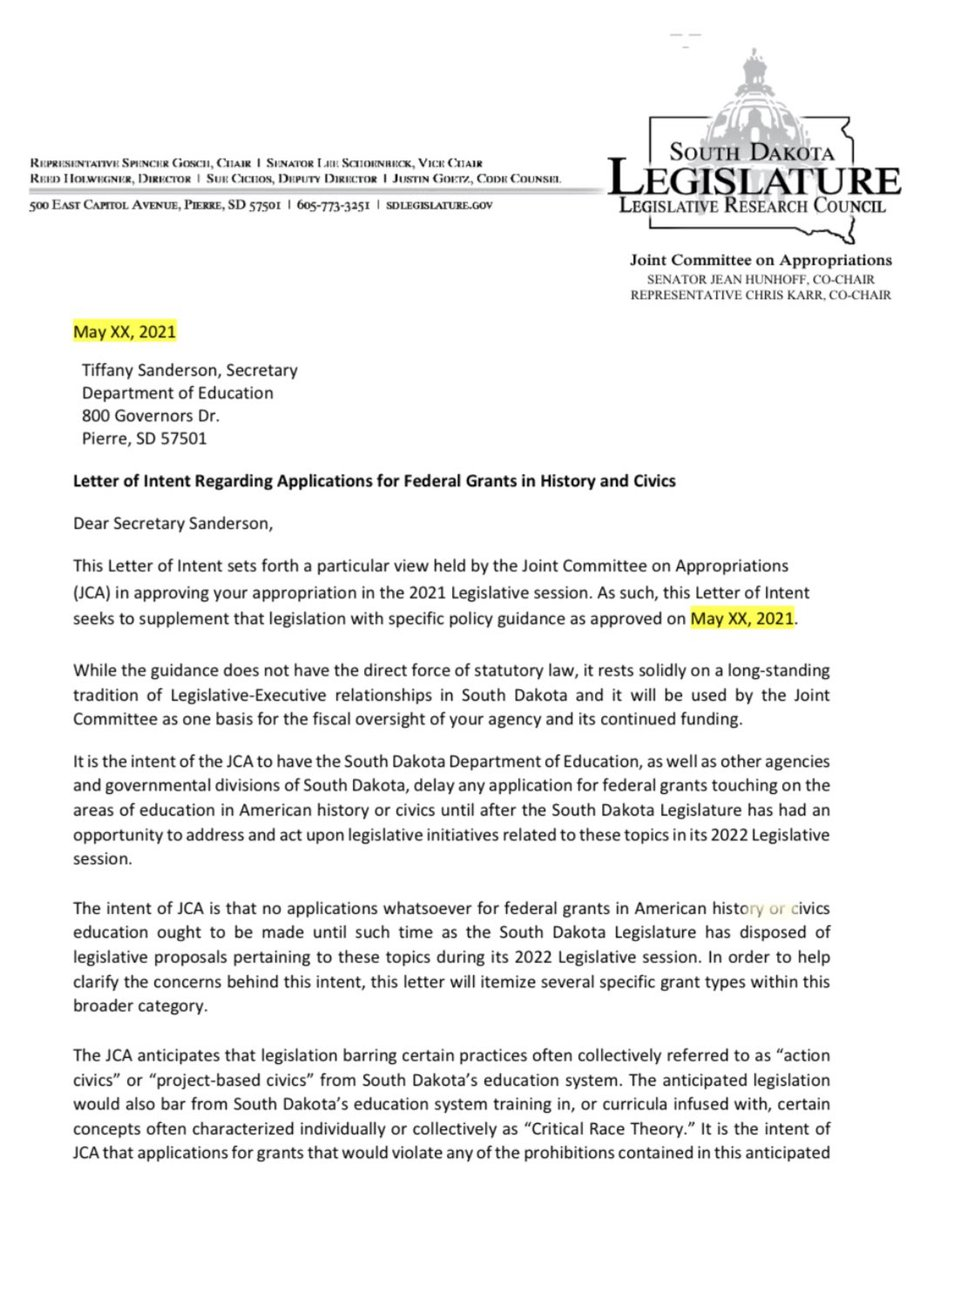 The SD Legislative Joint Appropriations committee sent a letter to Secretary Tiffany Sanderson...